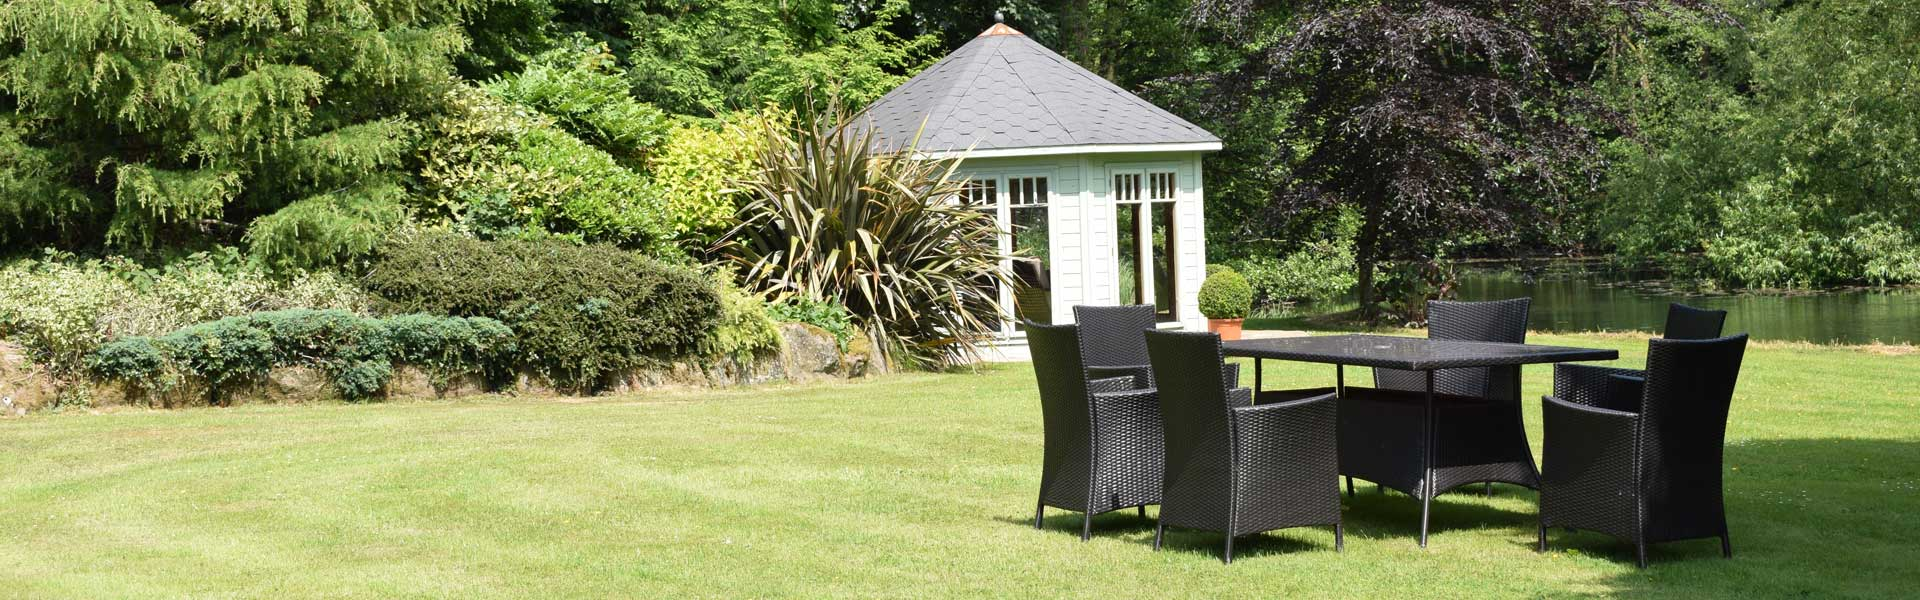 self catering cottages lancashire